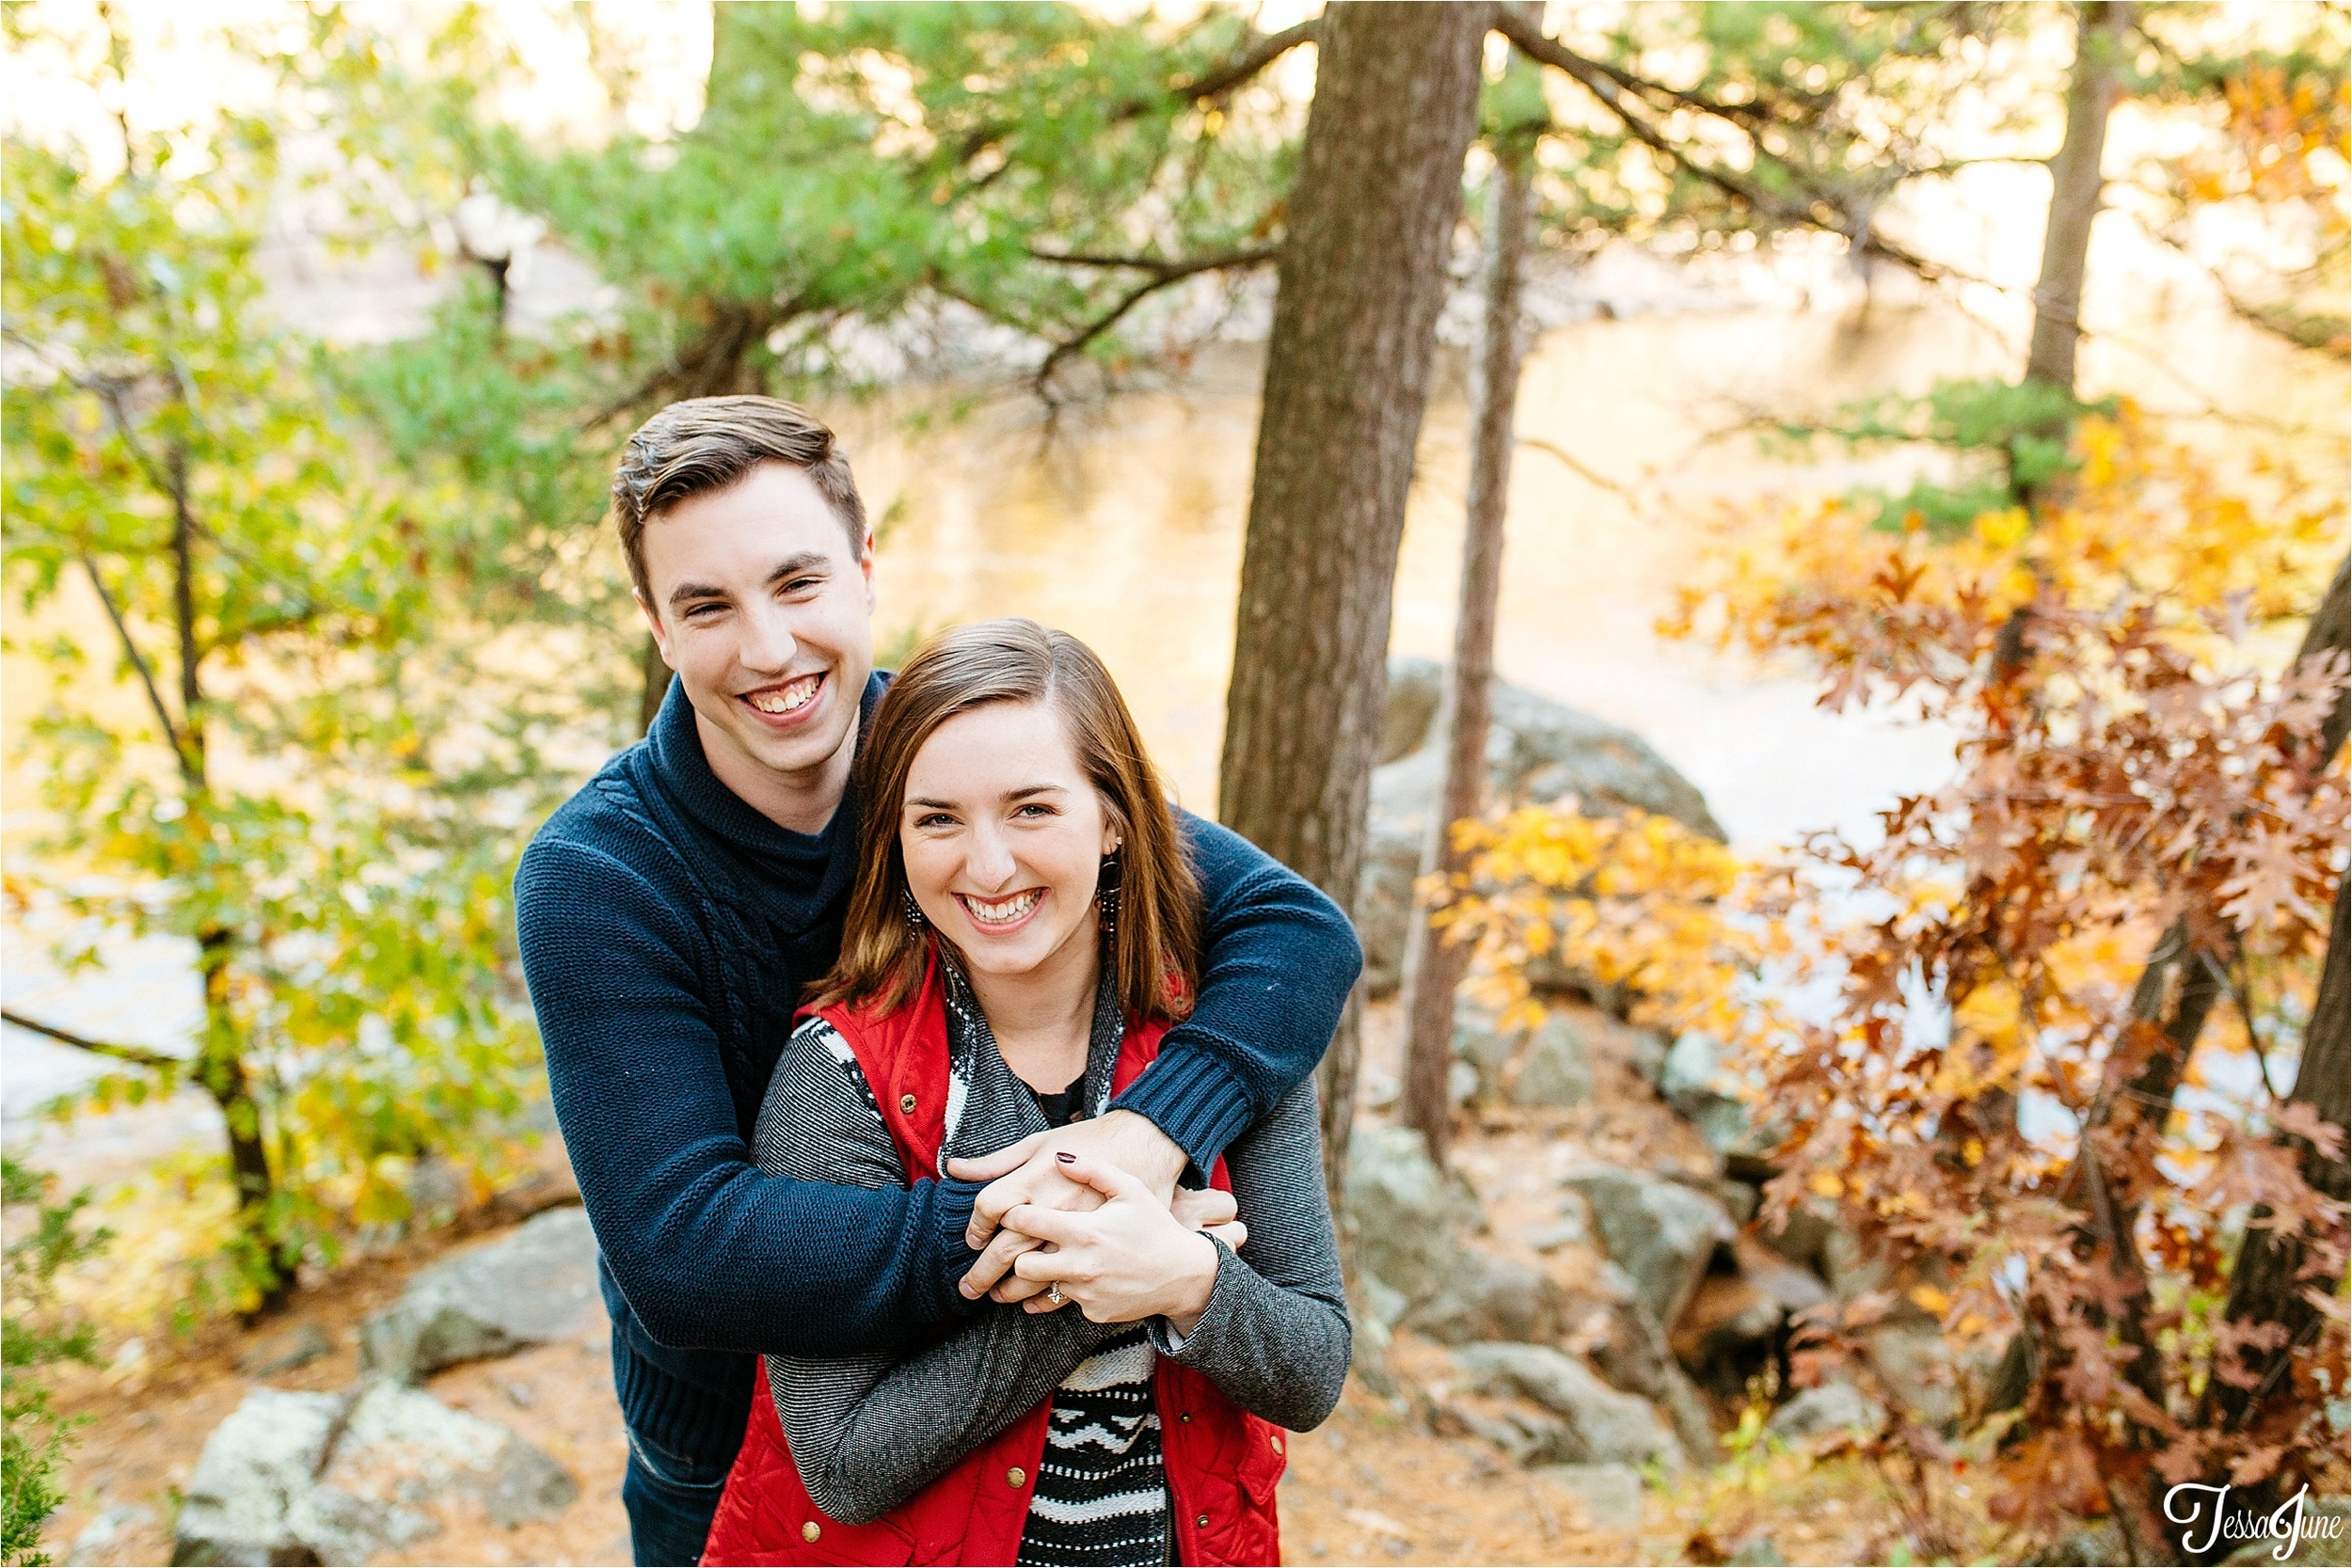 st-cloud-minnesota-wedding-photographer-taylors-falls-colorful-love